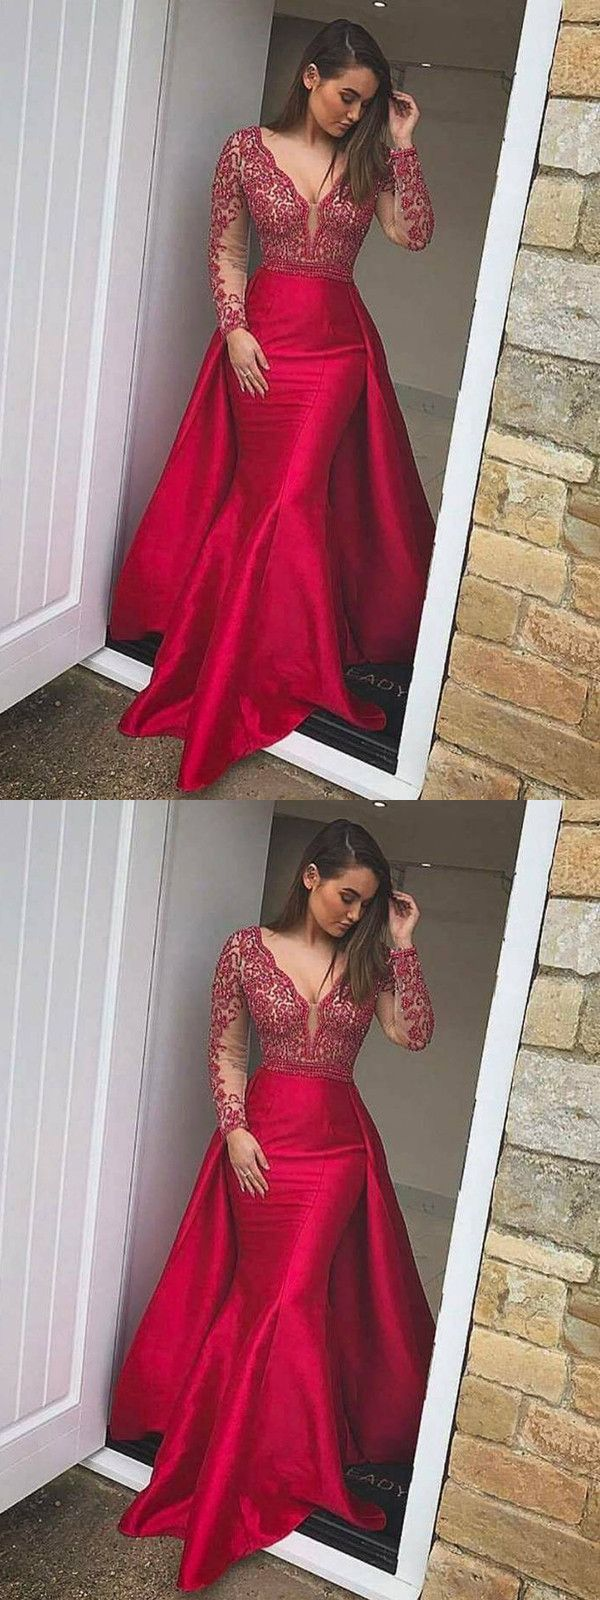 Mermaid v neck prom dress red cheap long prom dress vb